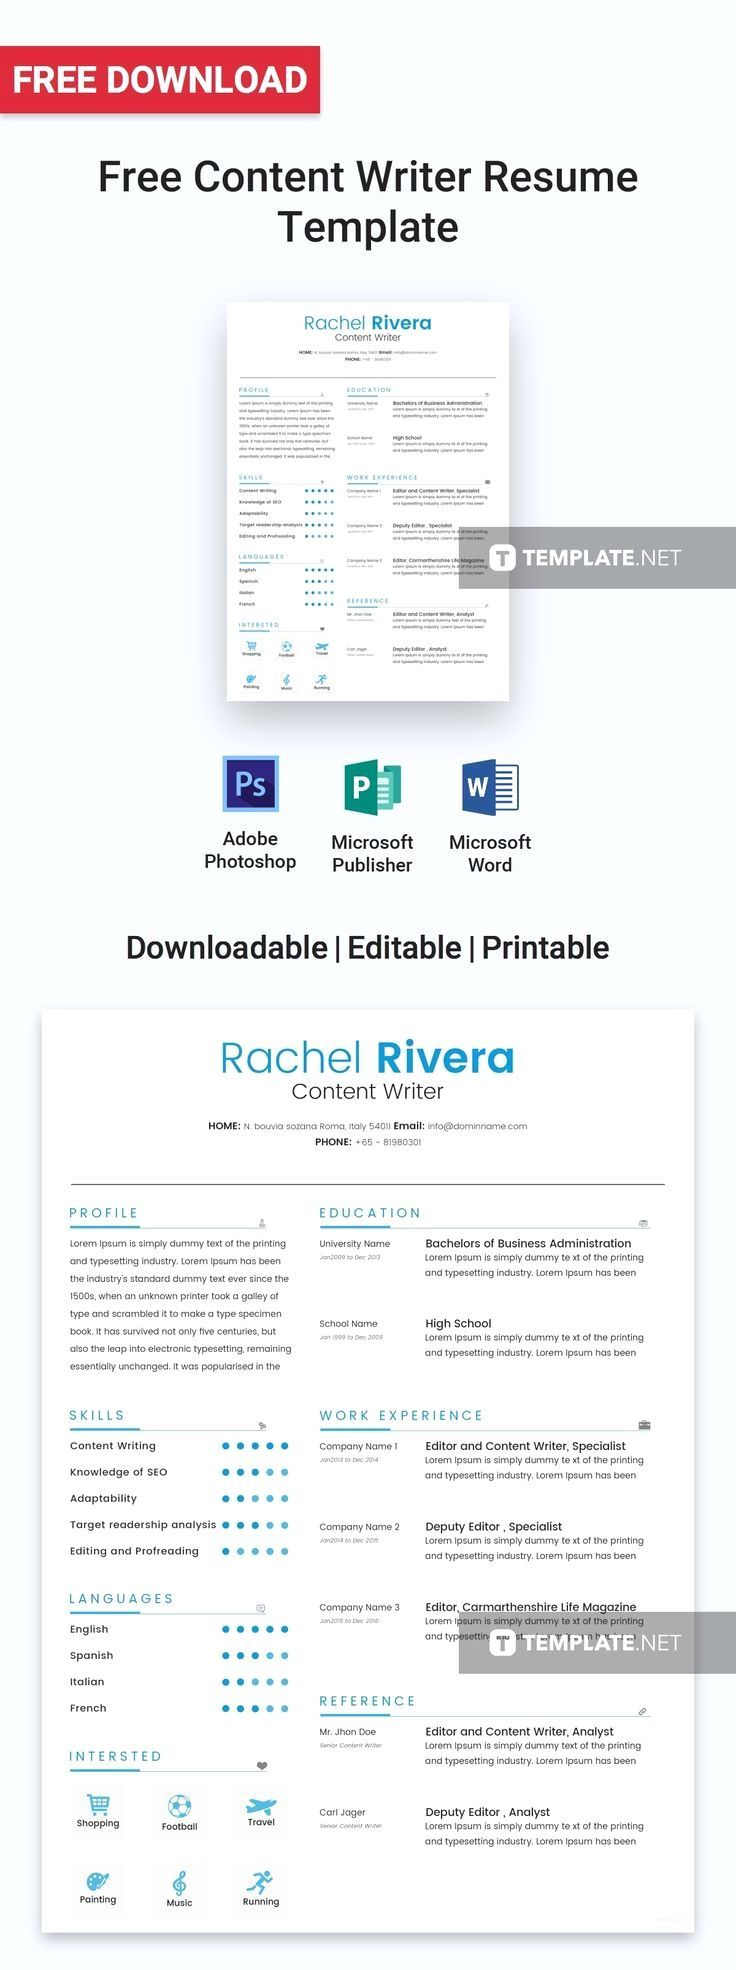 This resume, with its minimalistic design, is perfect for